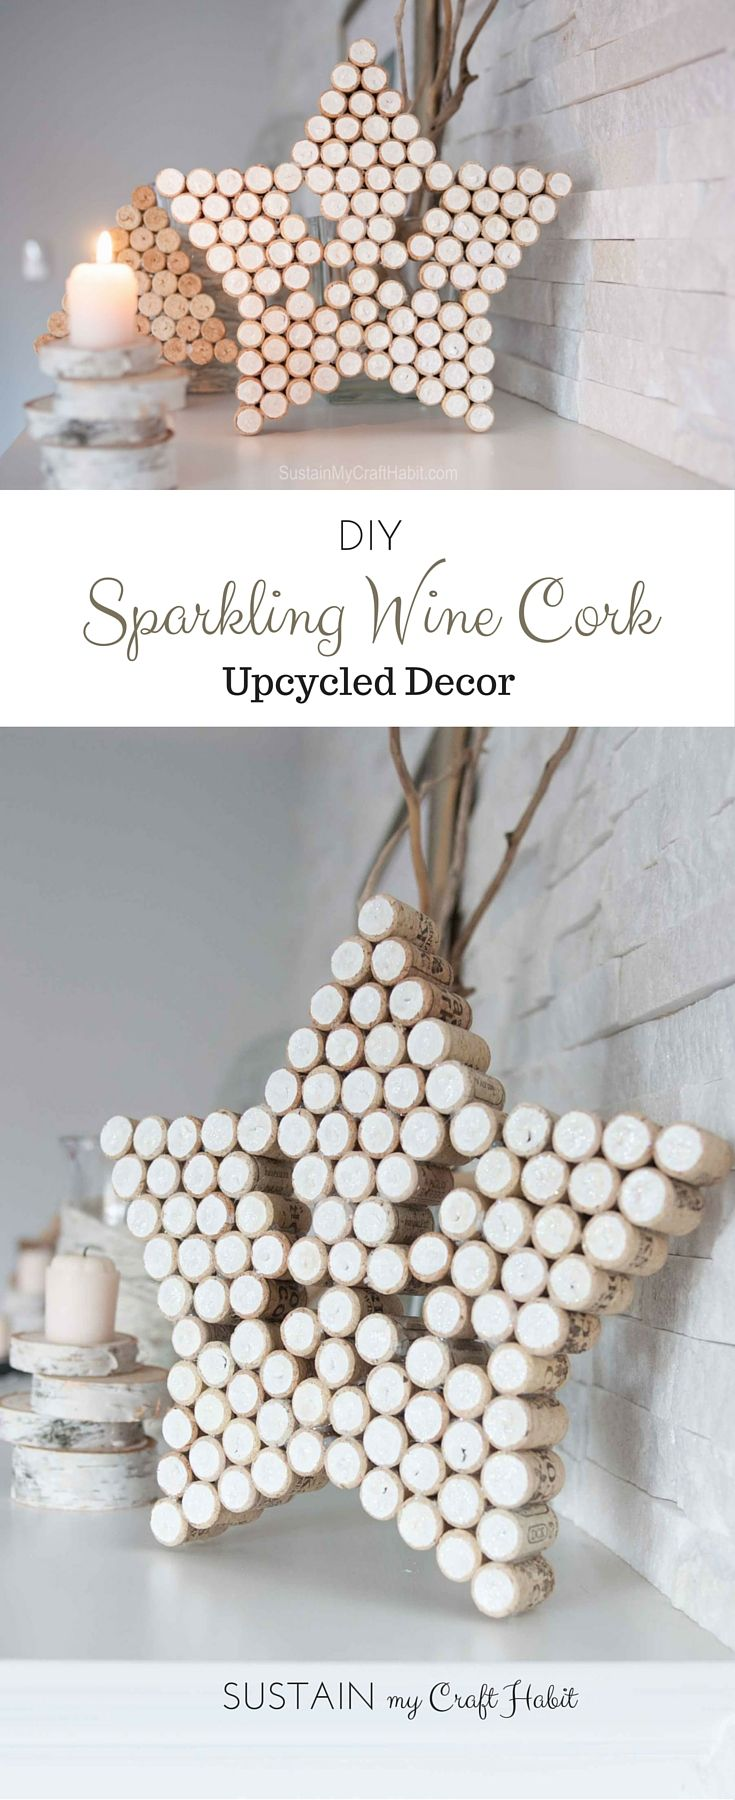 DIY decorative star and Christmas tree crafts upcycled from wine bottle corks. A lovely gift idea that's beautiful on its own or could be used as a pot holder on the kitchen table. Click through for the full tutorial for this home decor project.